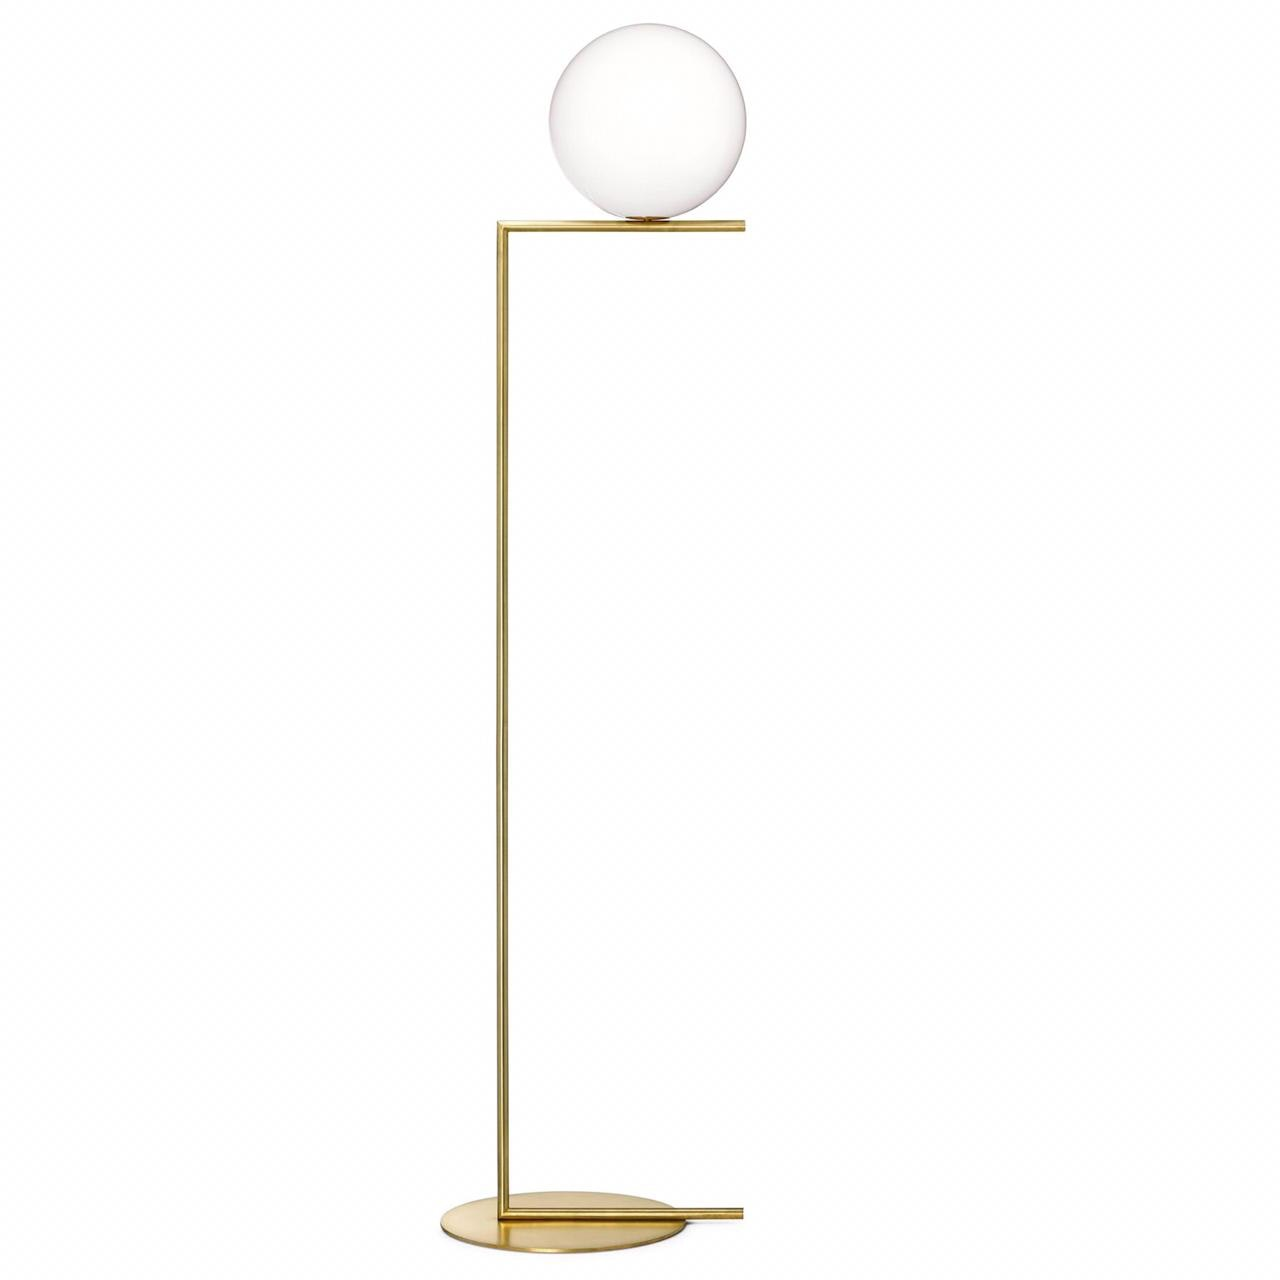 Lite and Deco Floor Lamp 9137F/L